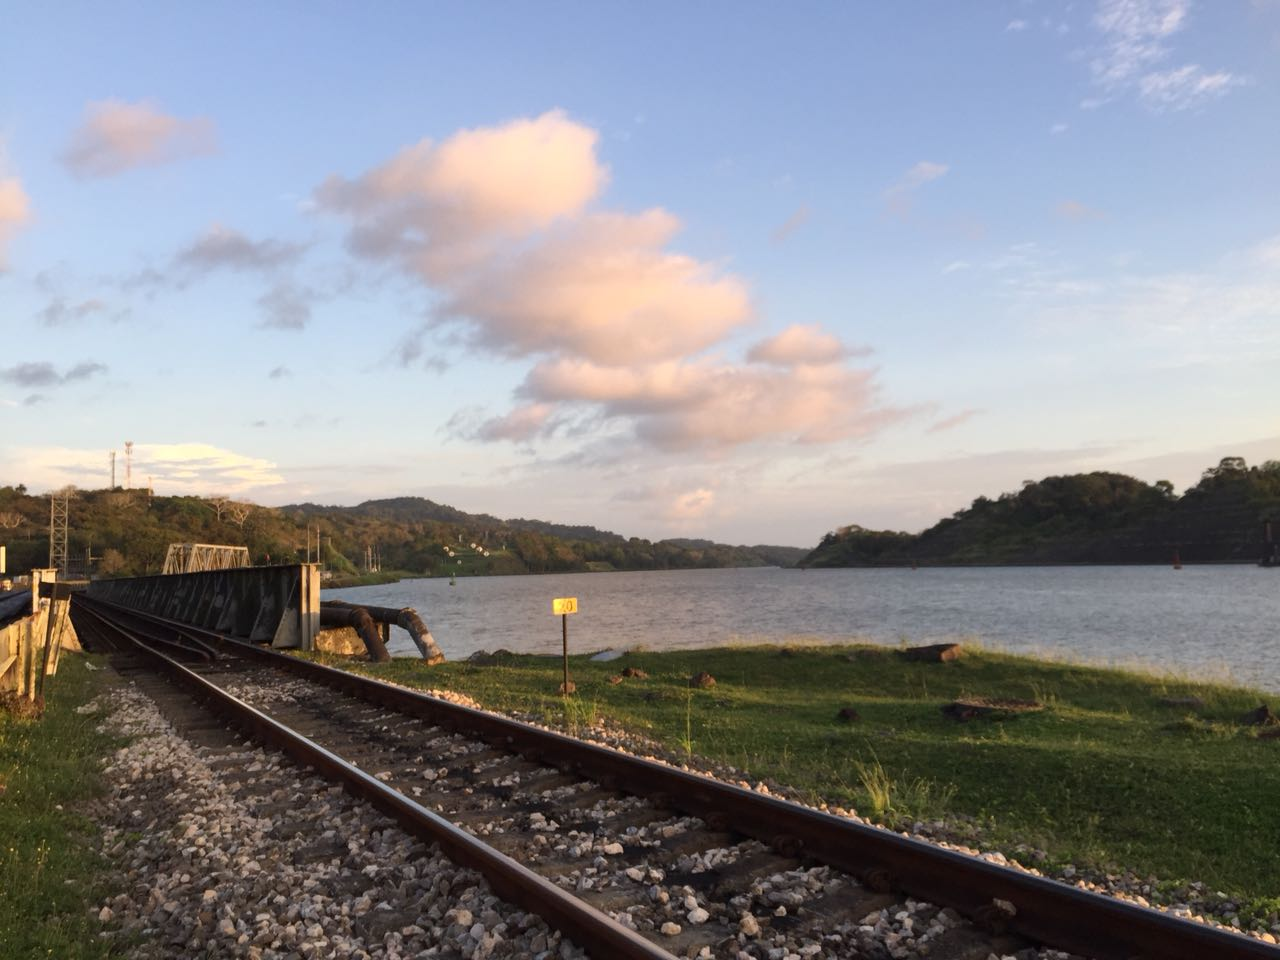 Gamboa Rainforest and Spanish Panama Activities: the history of the train systems through Panama, separation from Colombia, and the importance of the Panama Canal.